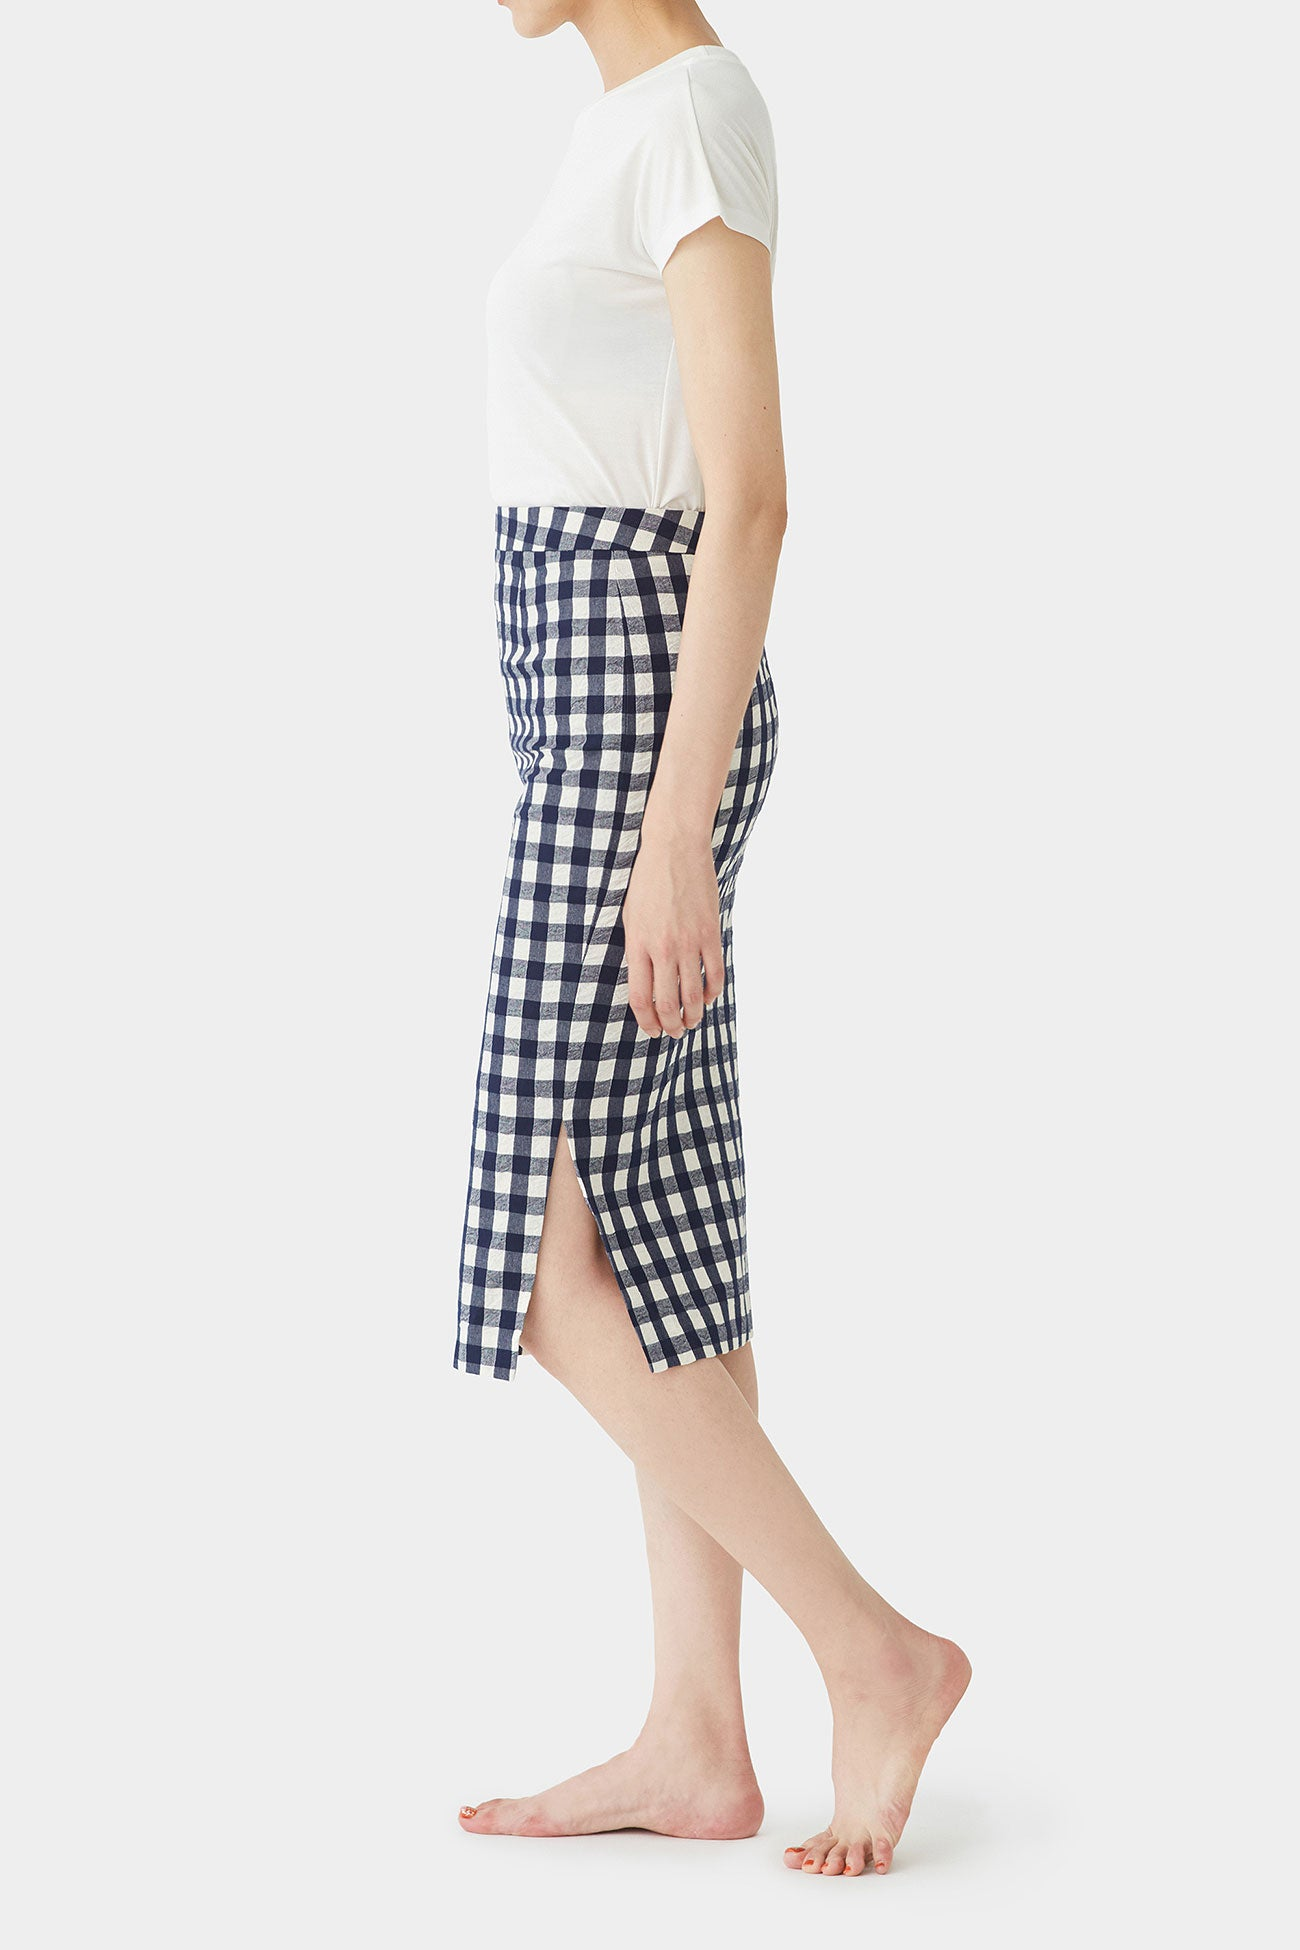 NAVY  IRIS PLAID SKIRT